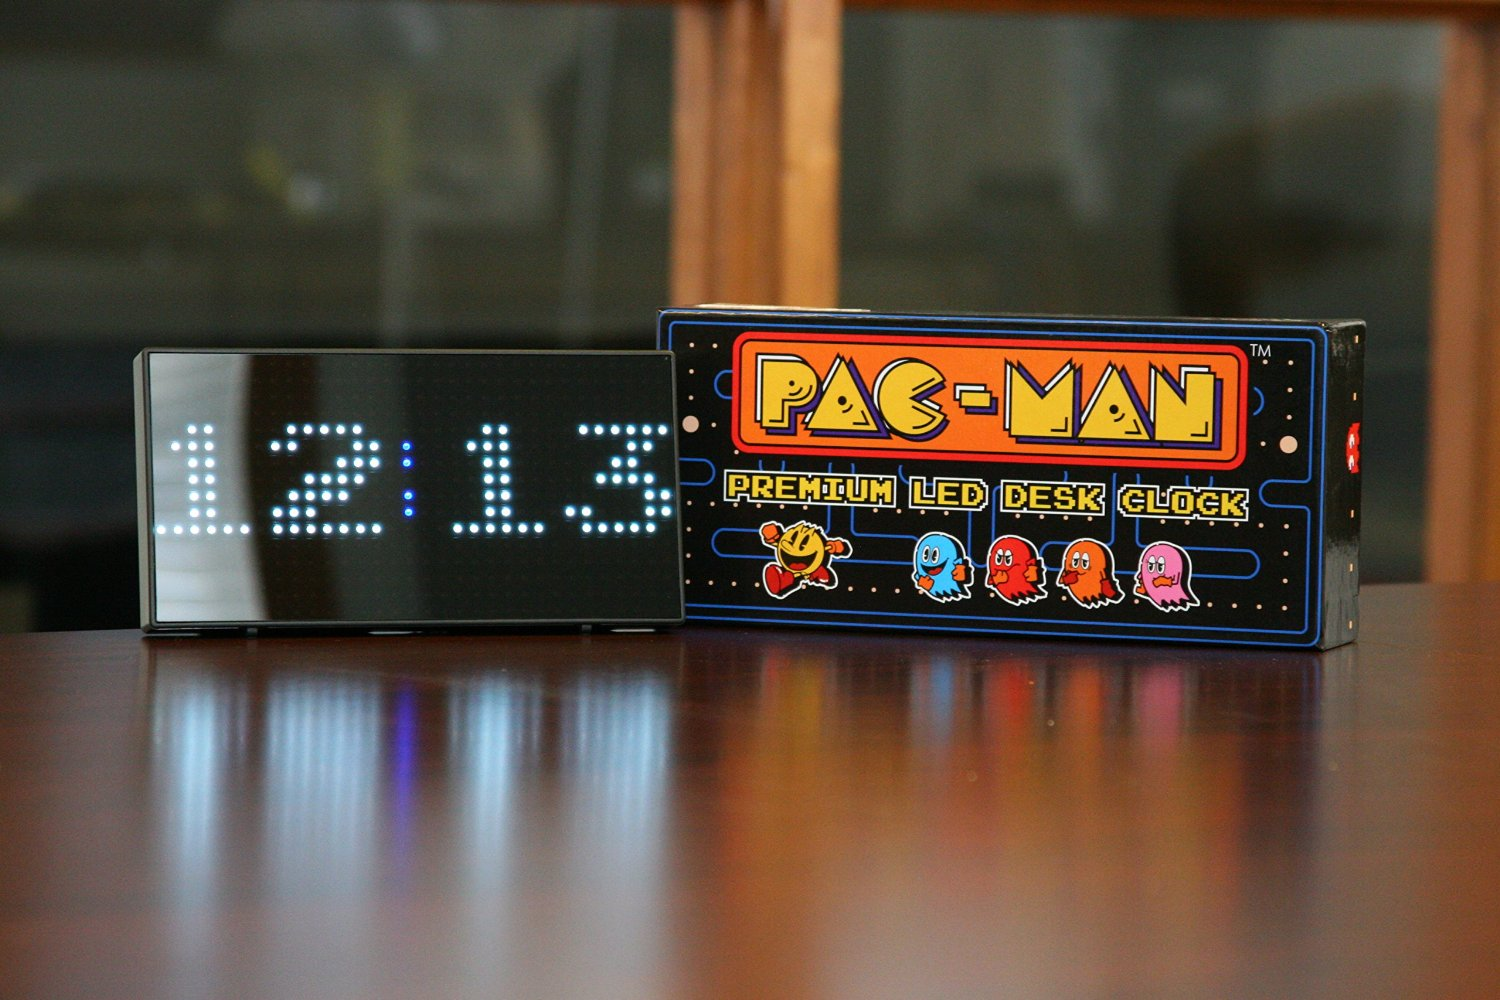 Pac Man Premium Led Desk Clock Pac Man Premium Led Desk